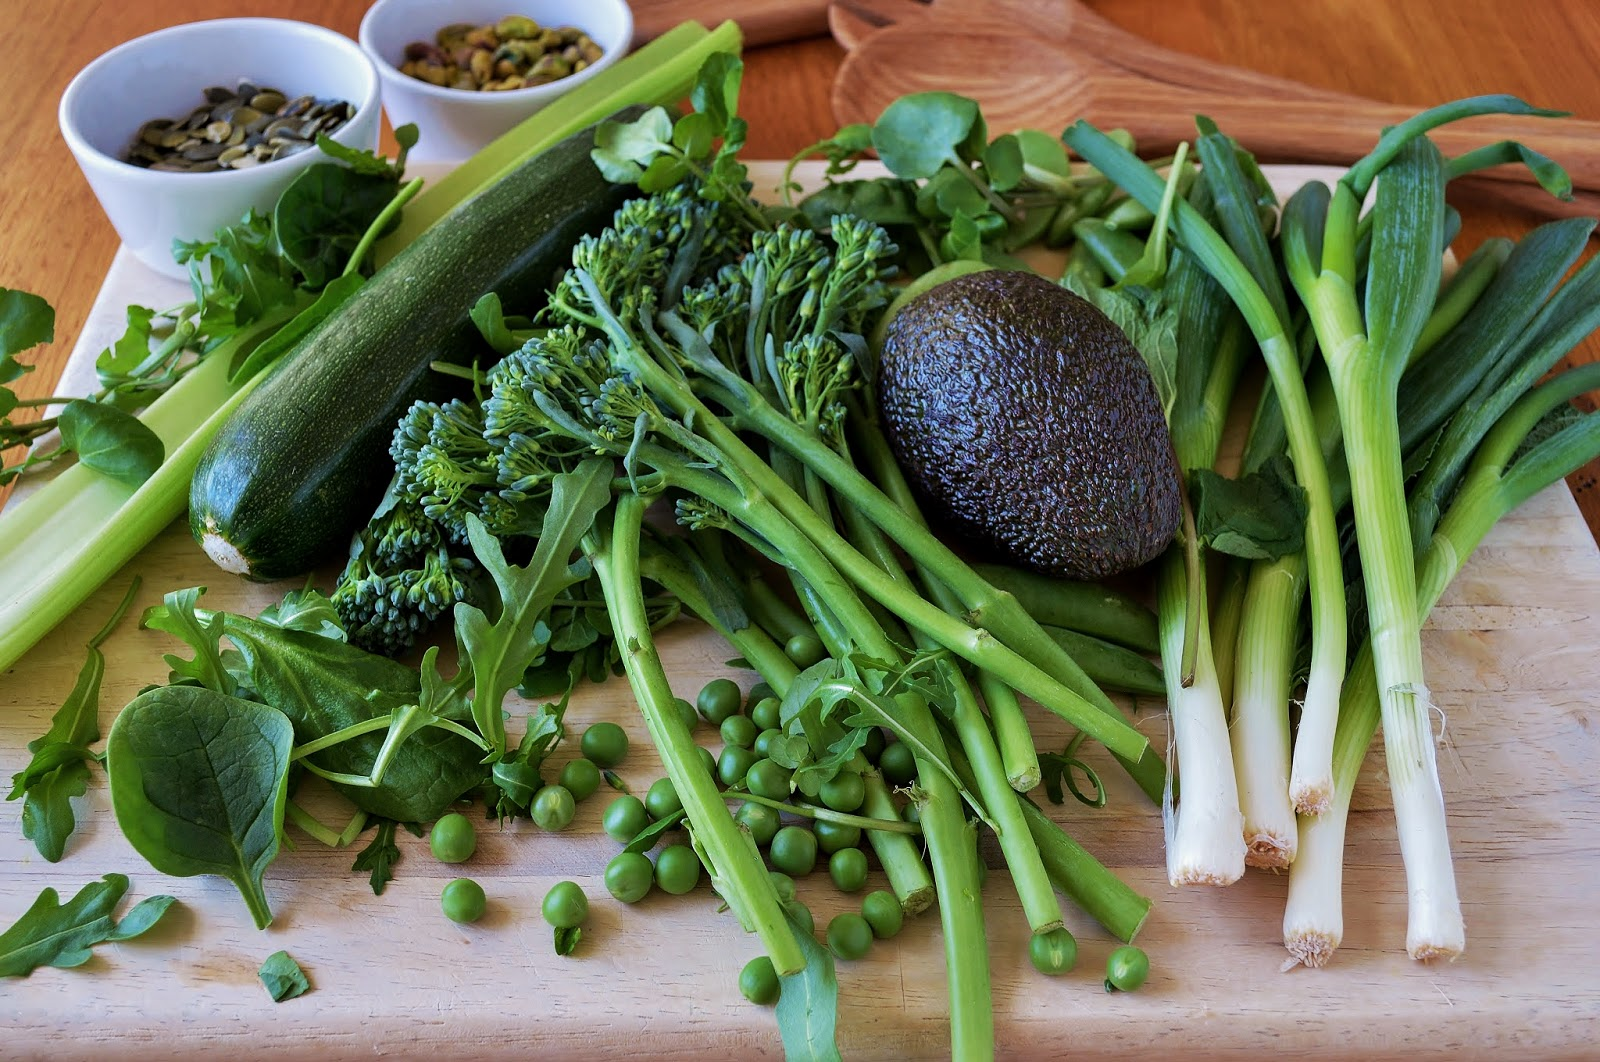 Green Vegetables for the salad